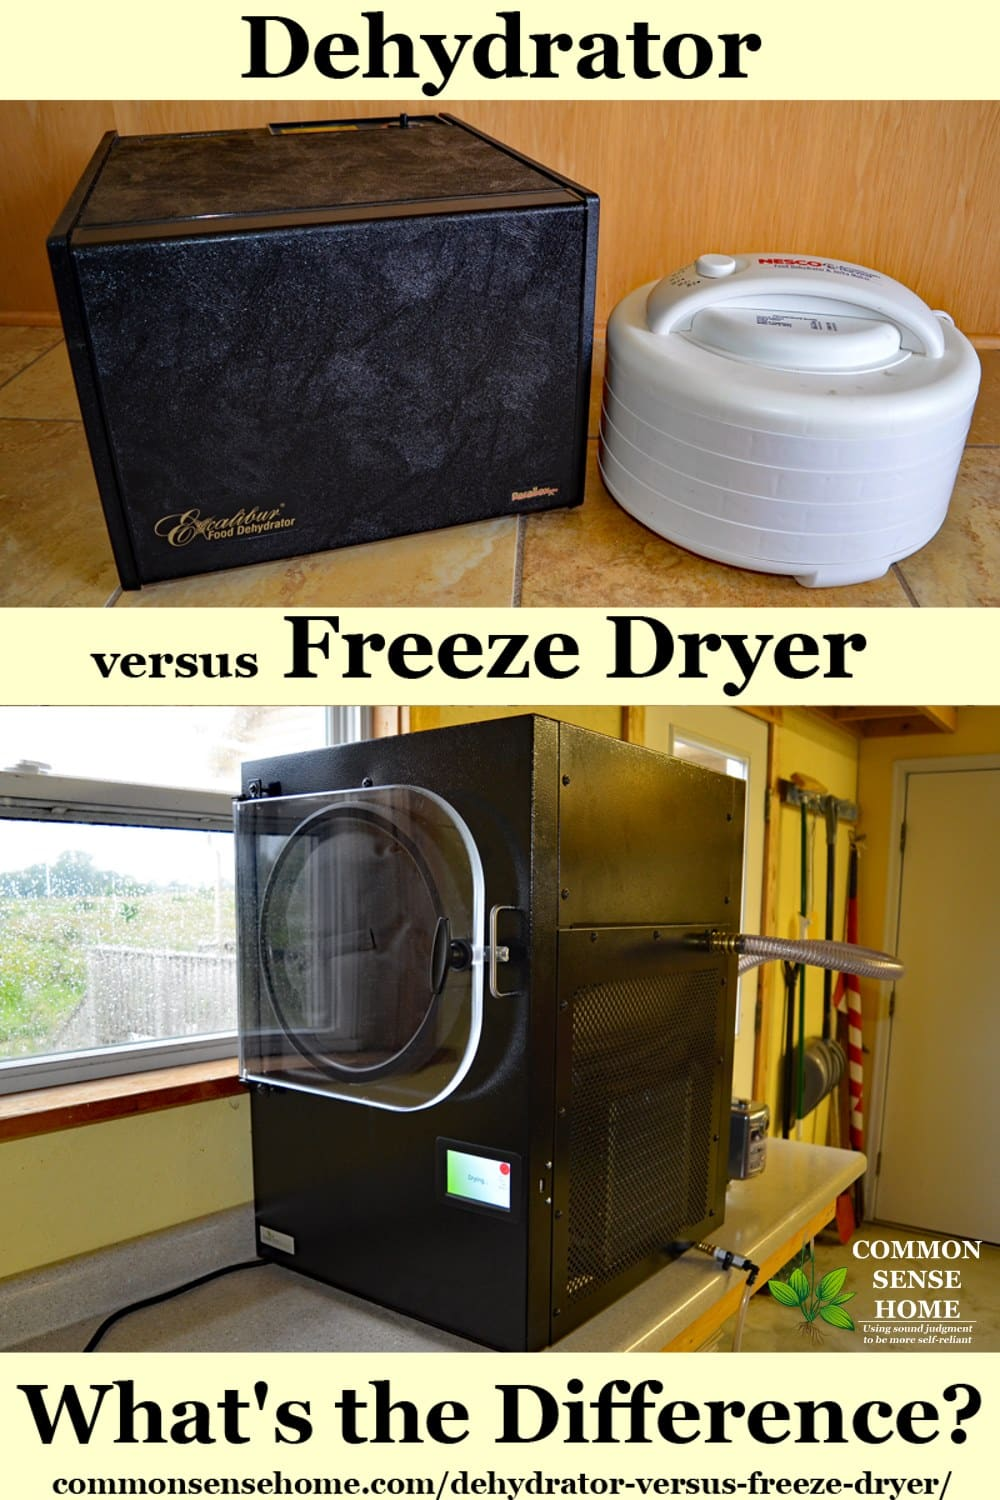 dehydrator versus freeze dryer